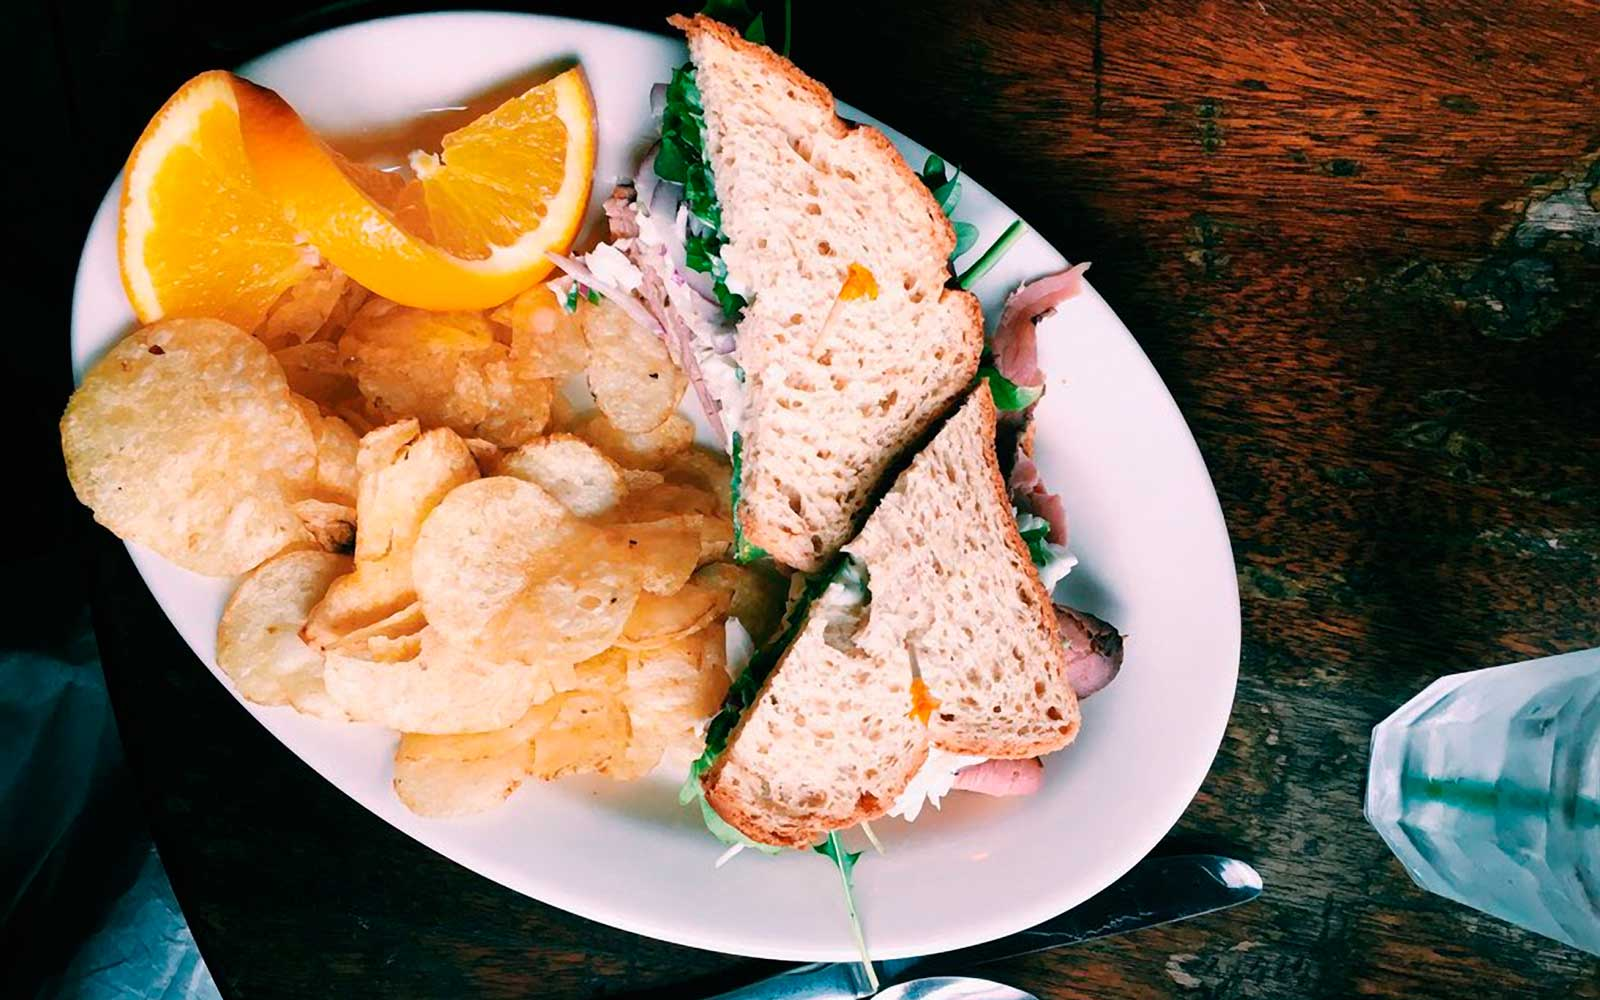 Sandwich at Blunozer Cade in Denver Colorado